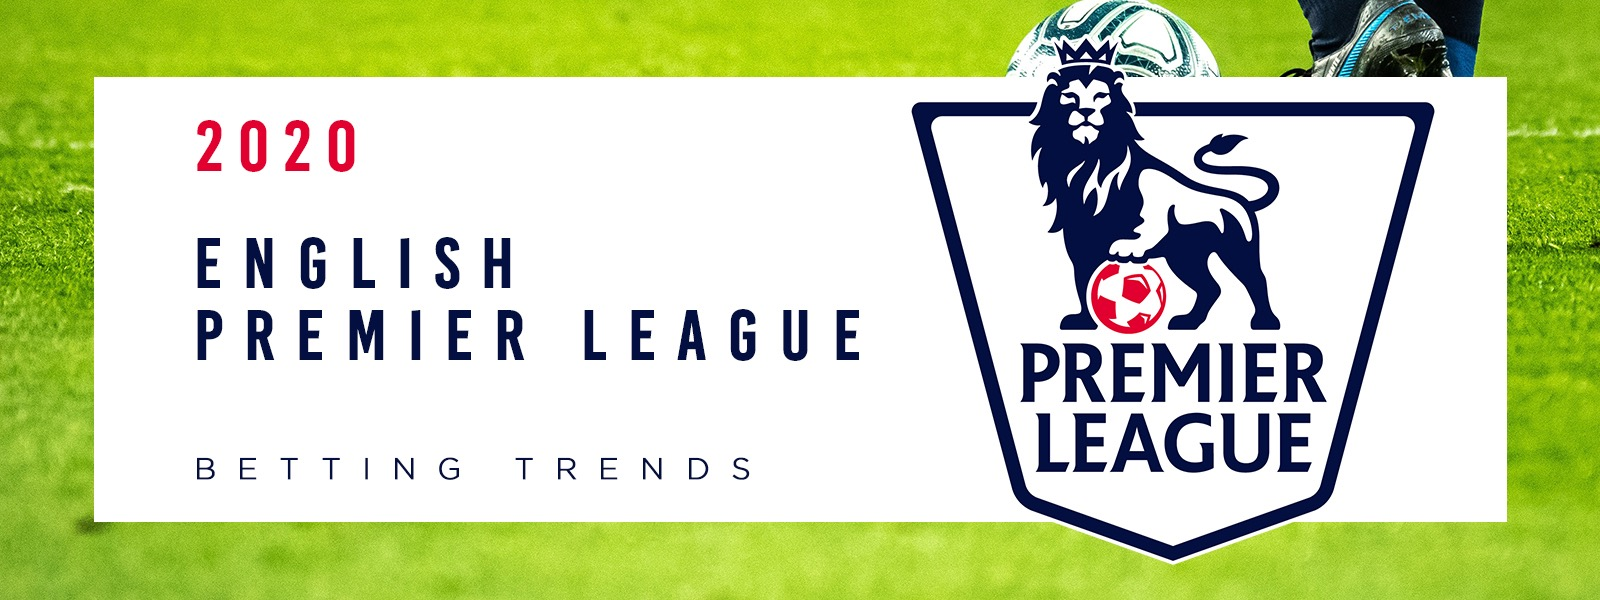 English Premier League Betting Trends